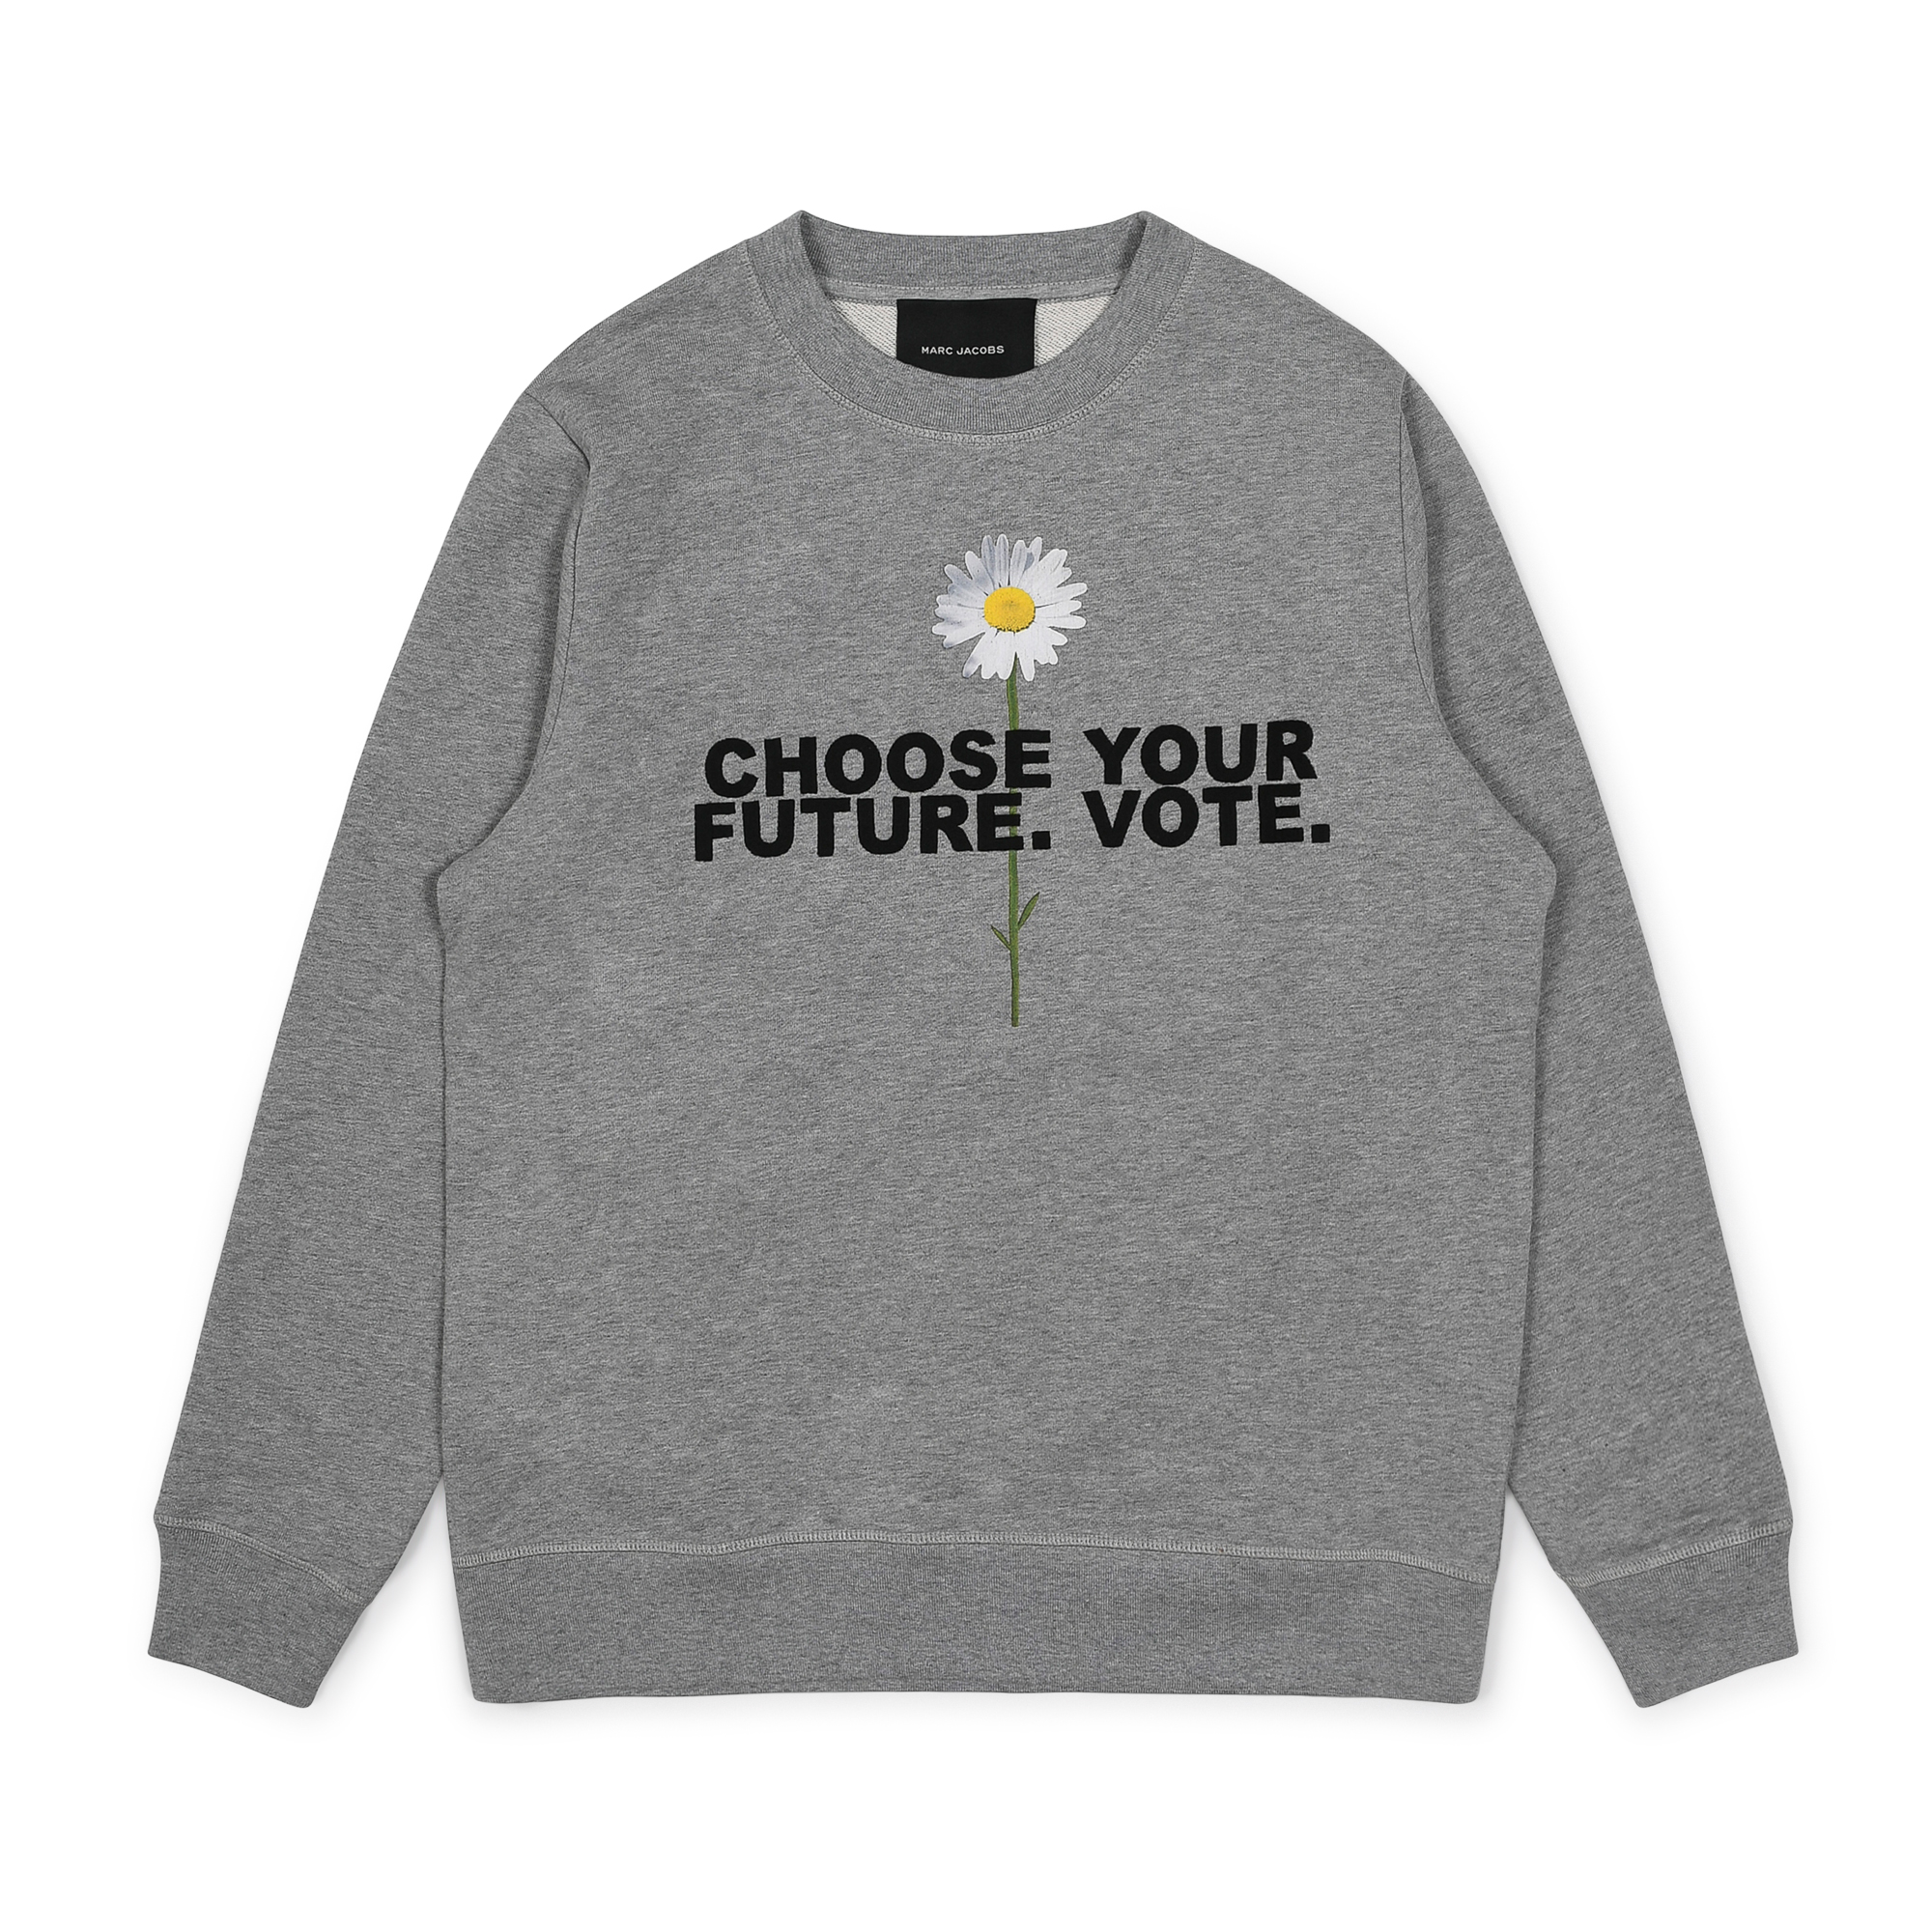 How Brands Are Encouraging Customers to Vote